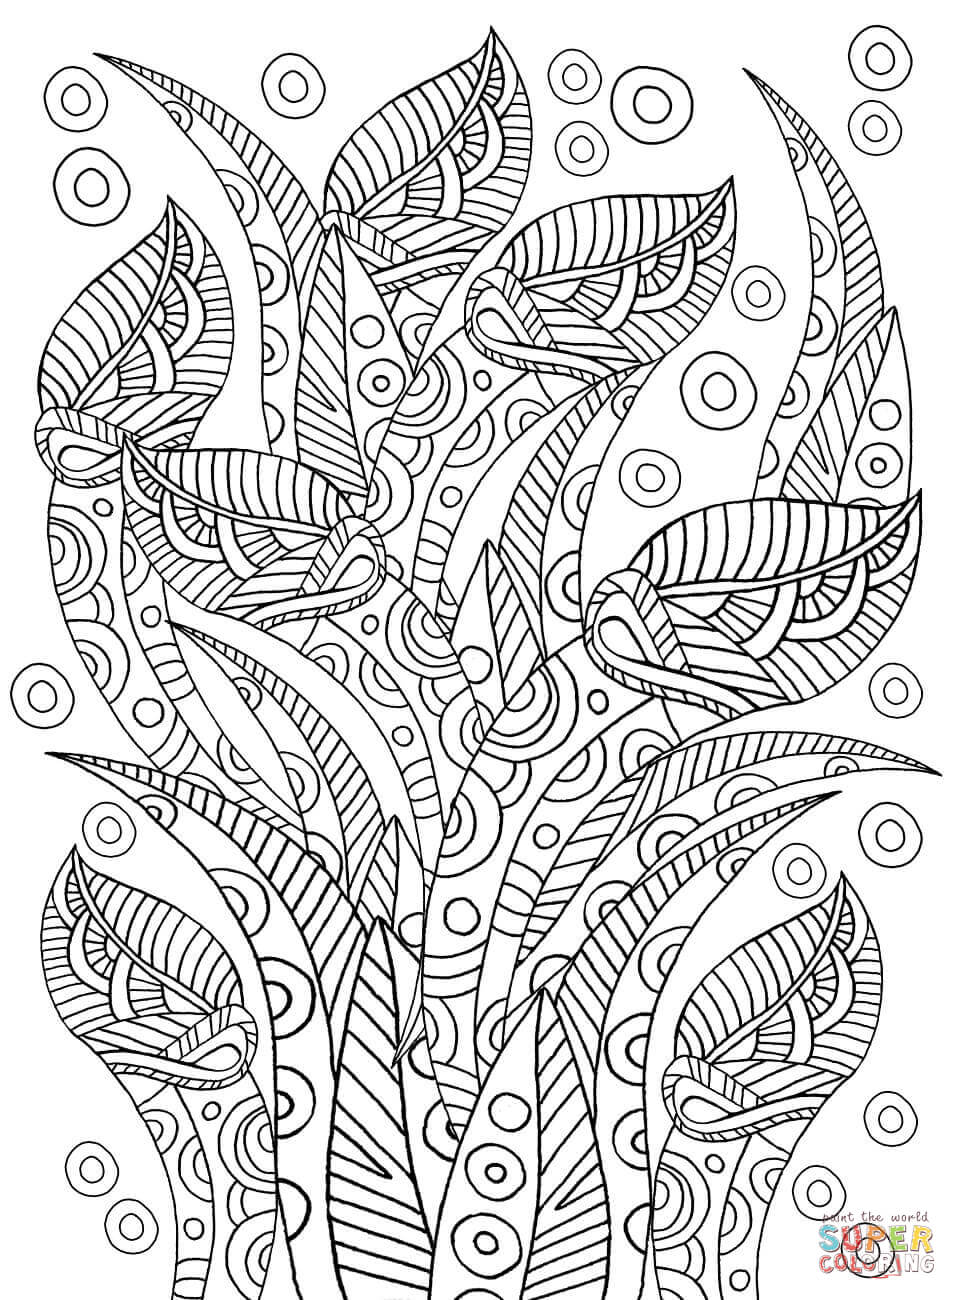 coloring pattern pages pattern coloring pages best coloring pages for kids coloring pattern pages